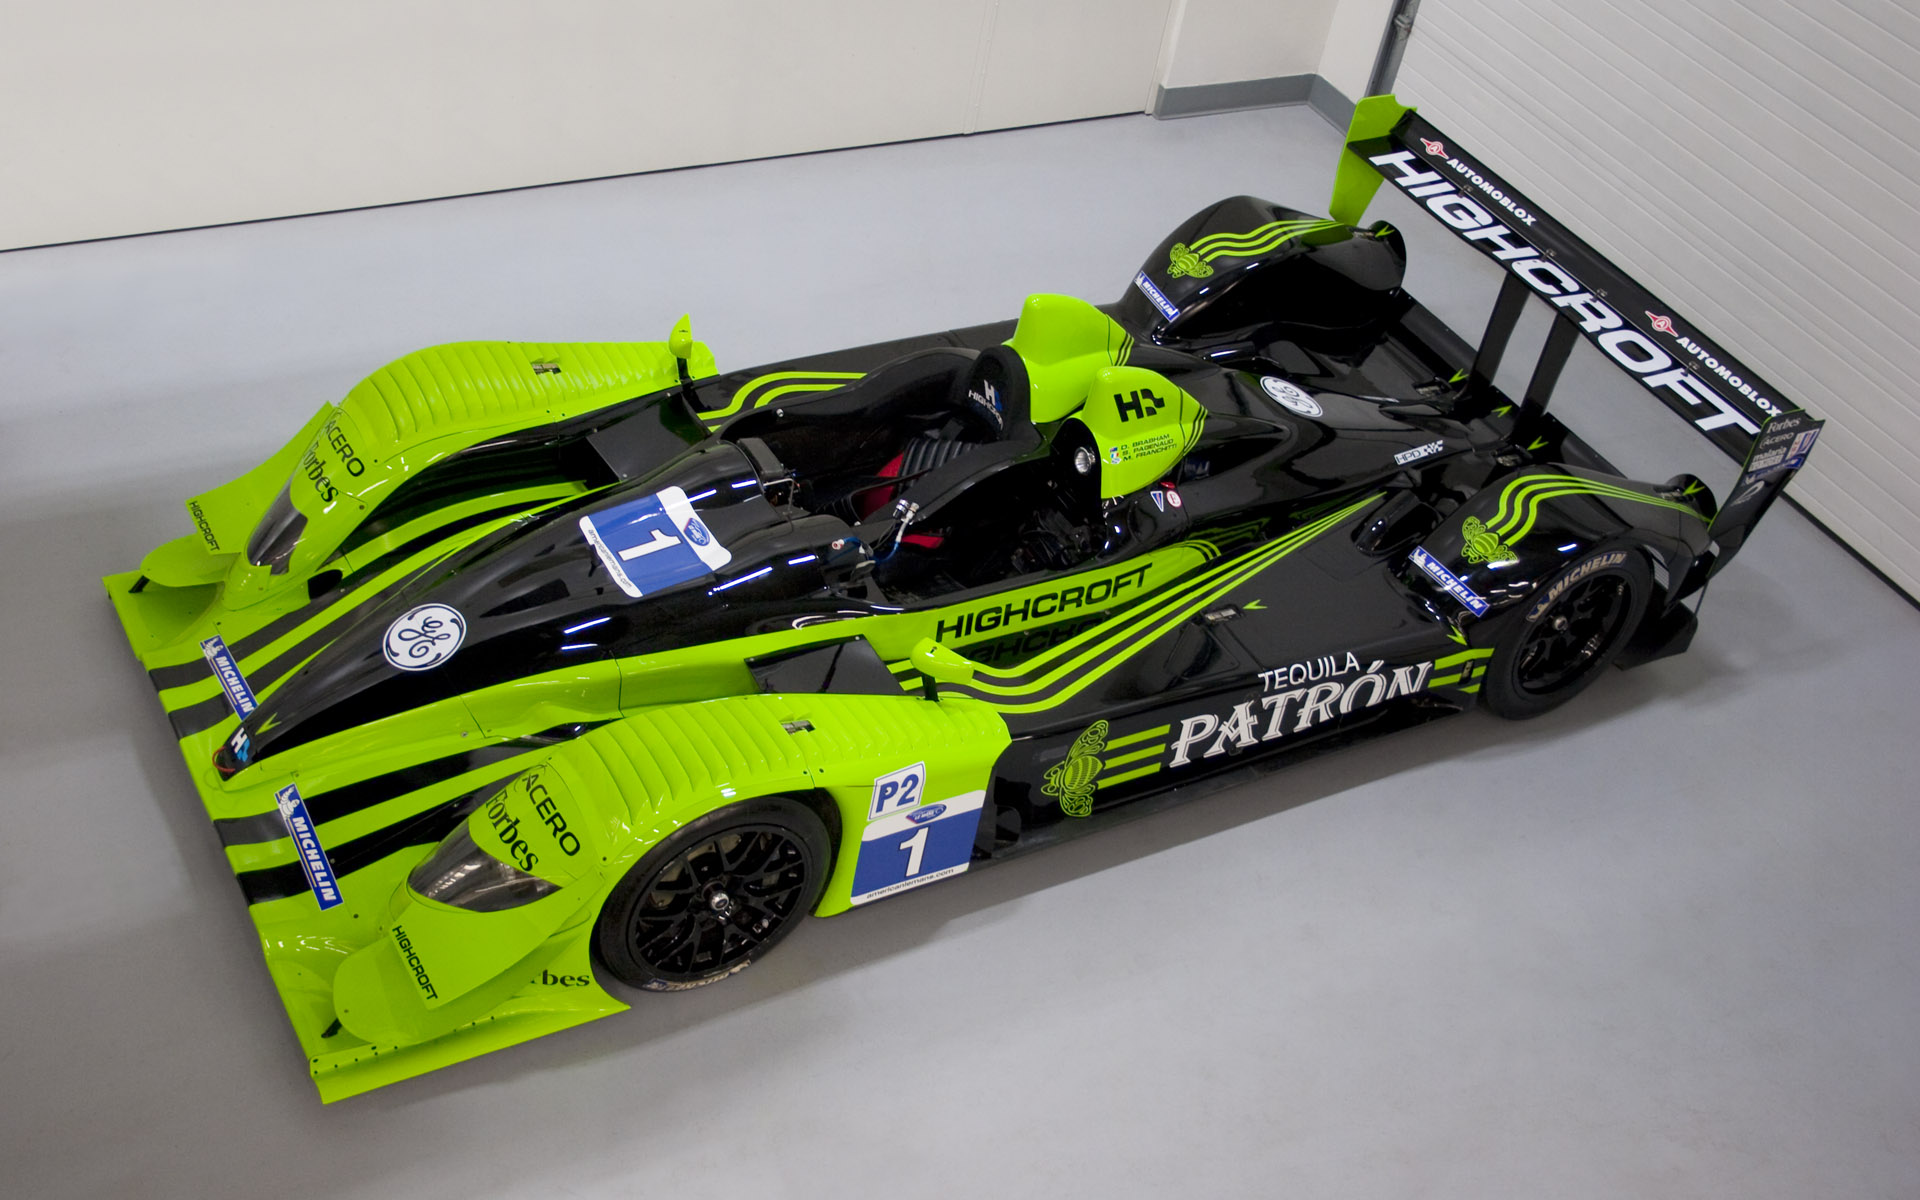 2010 Pátron Highcroft Racing HPD ARX-01c LMP2 Livery